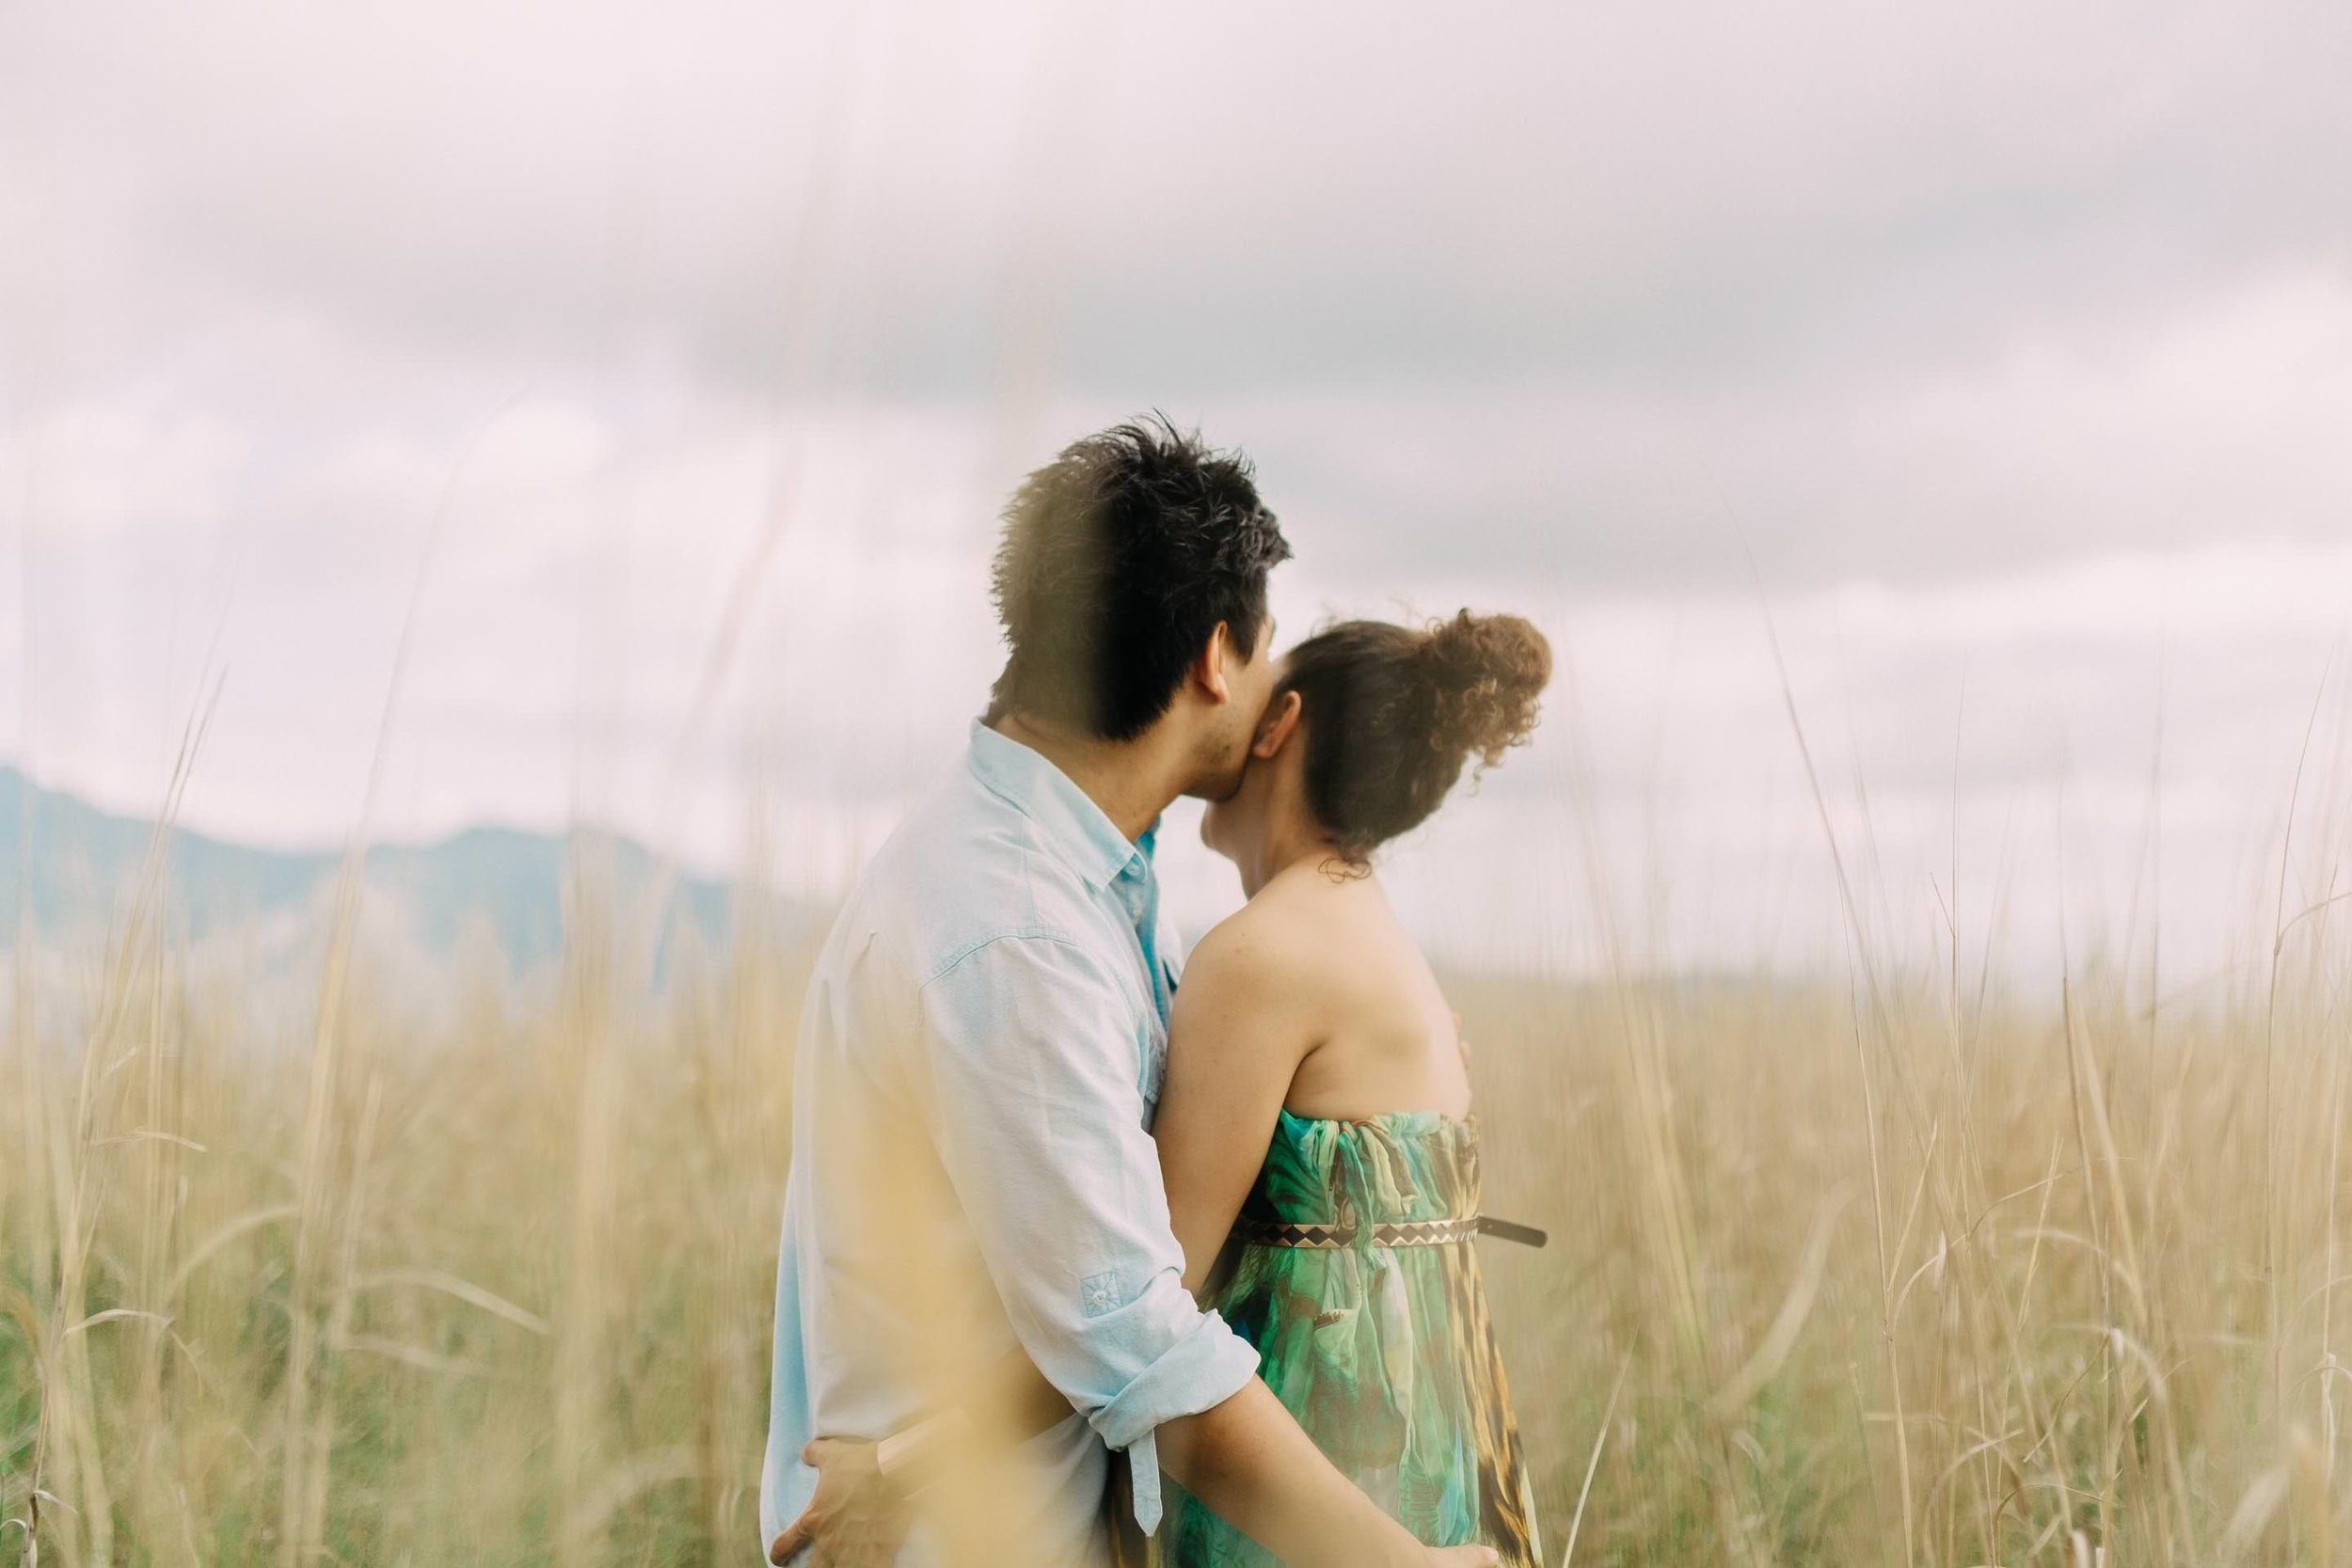 Sean kissing his bride to be on the cheek in tall grass